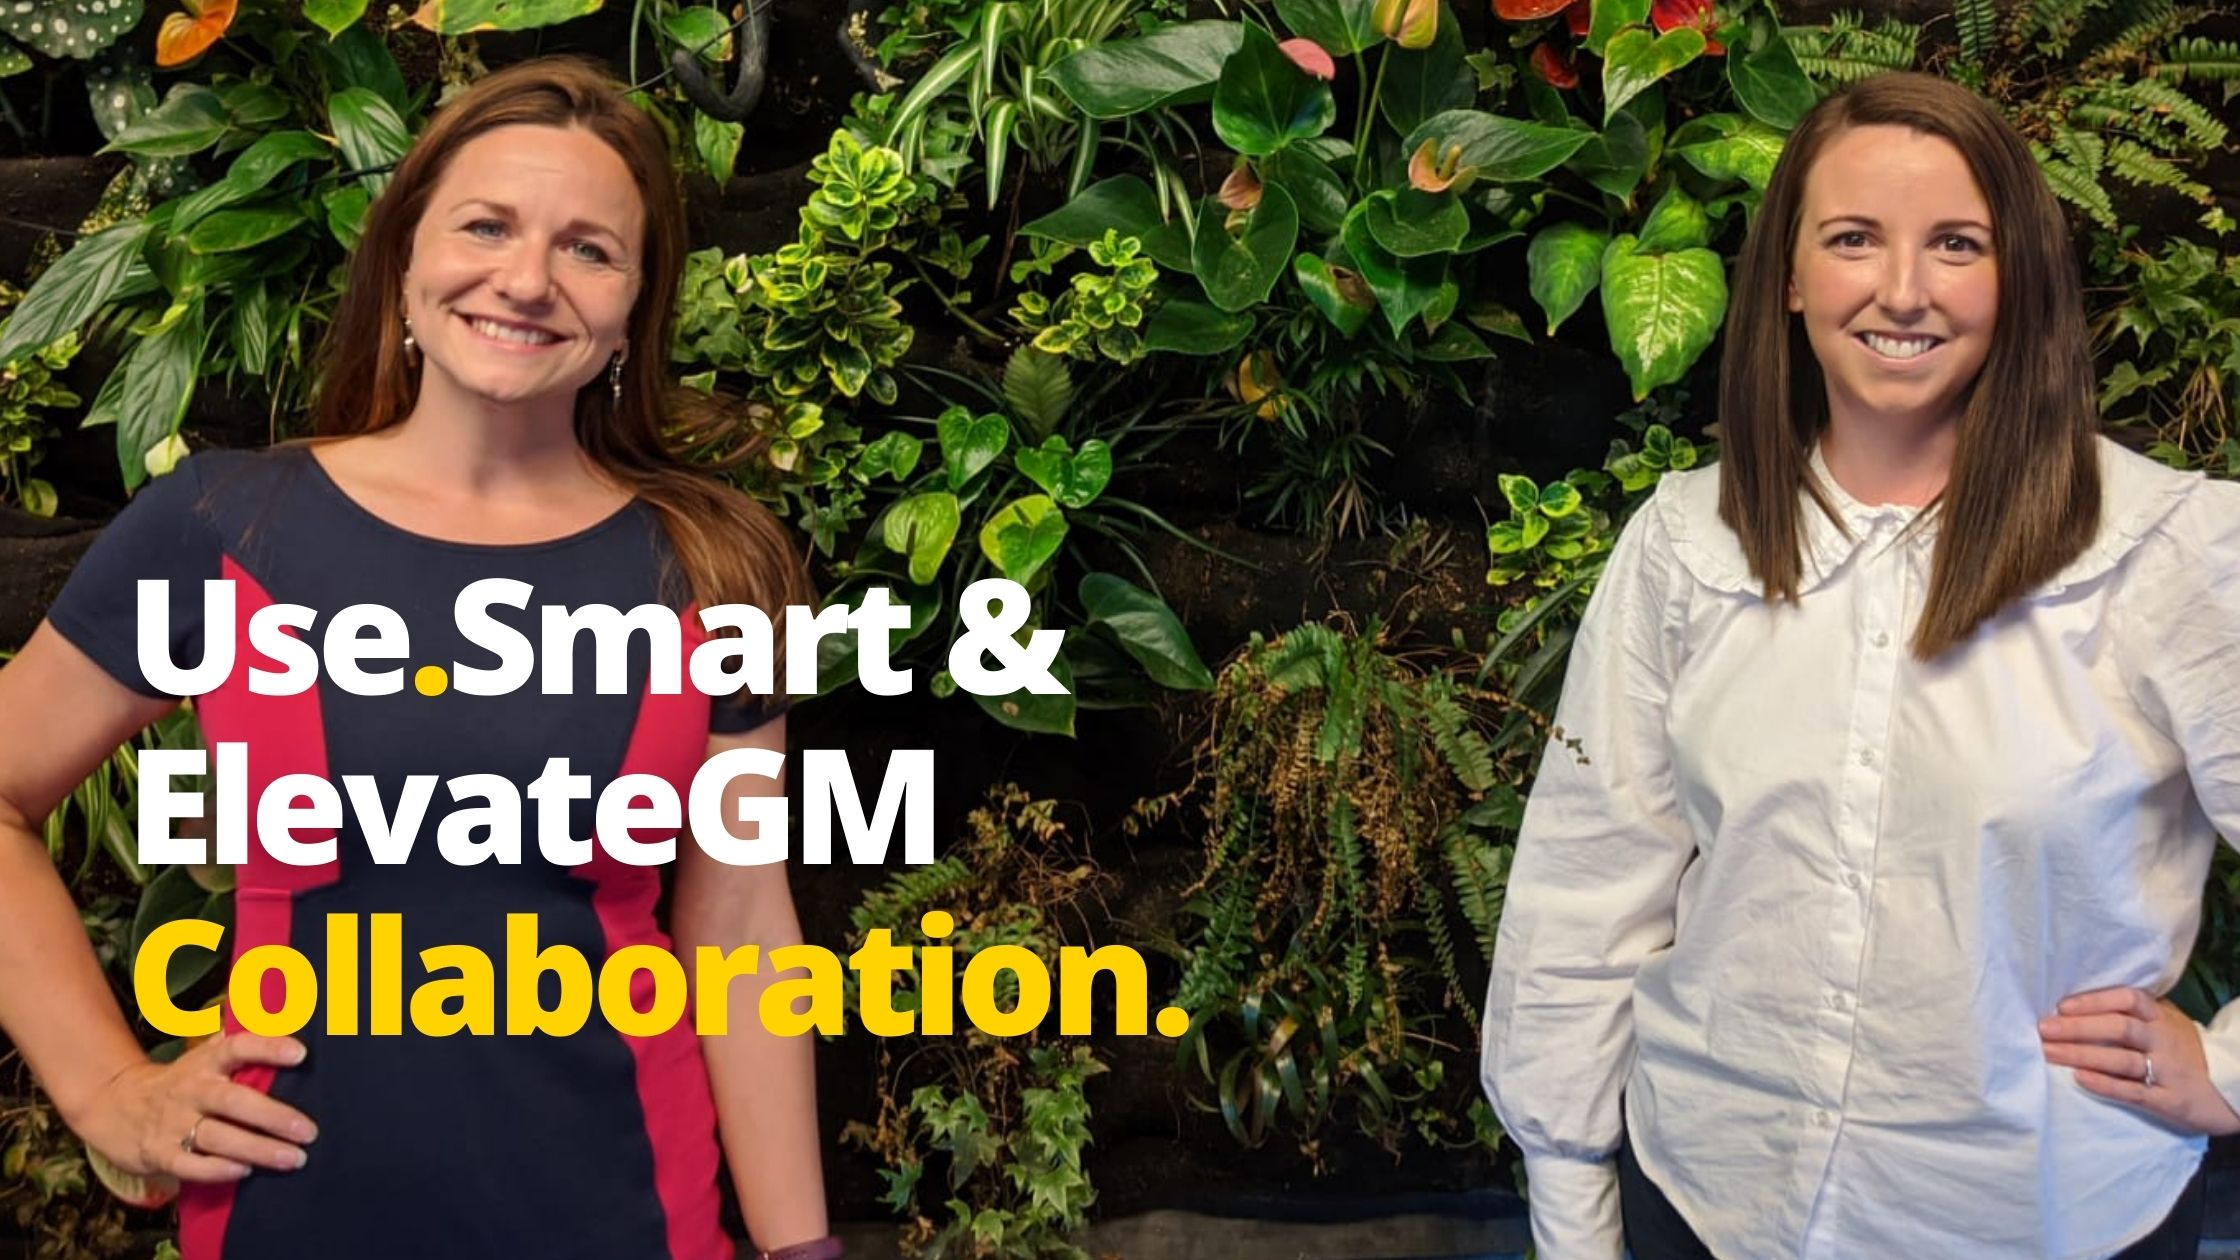 Use.Smart & Elevate GM